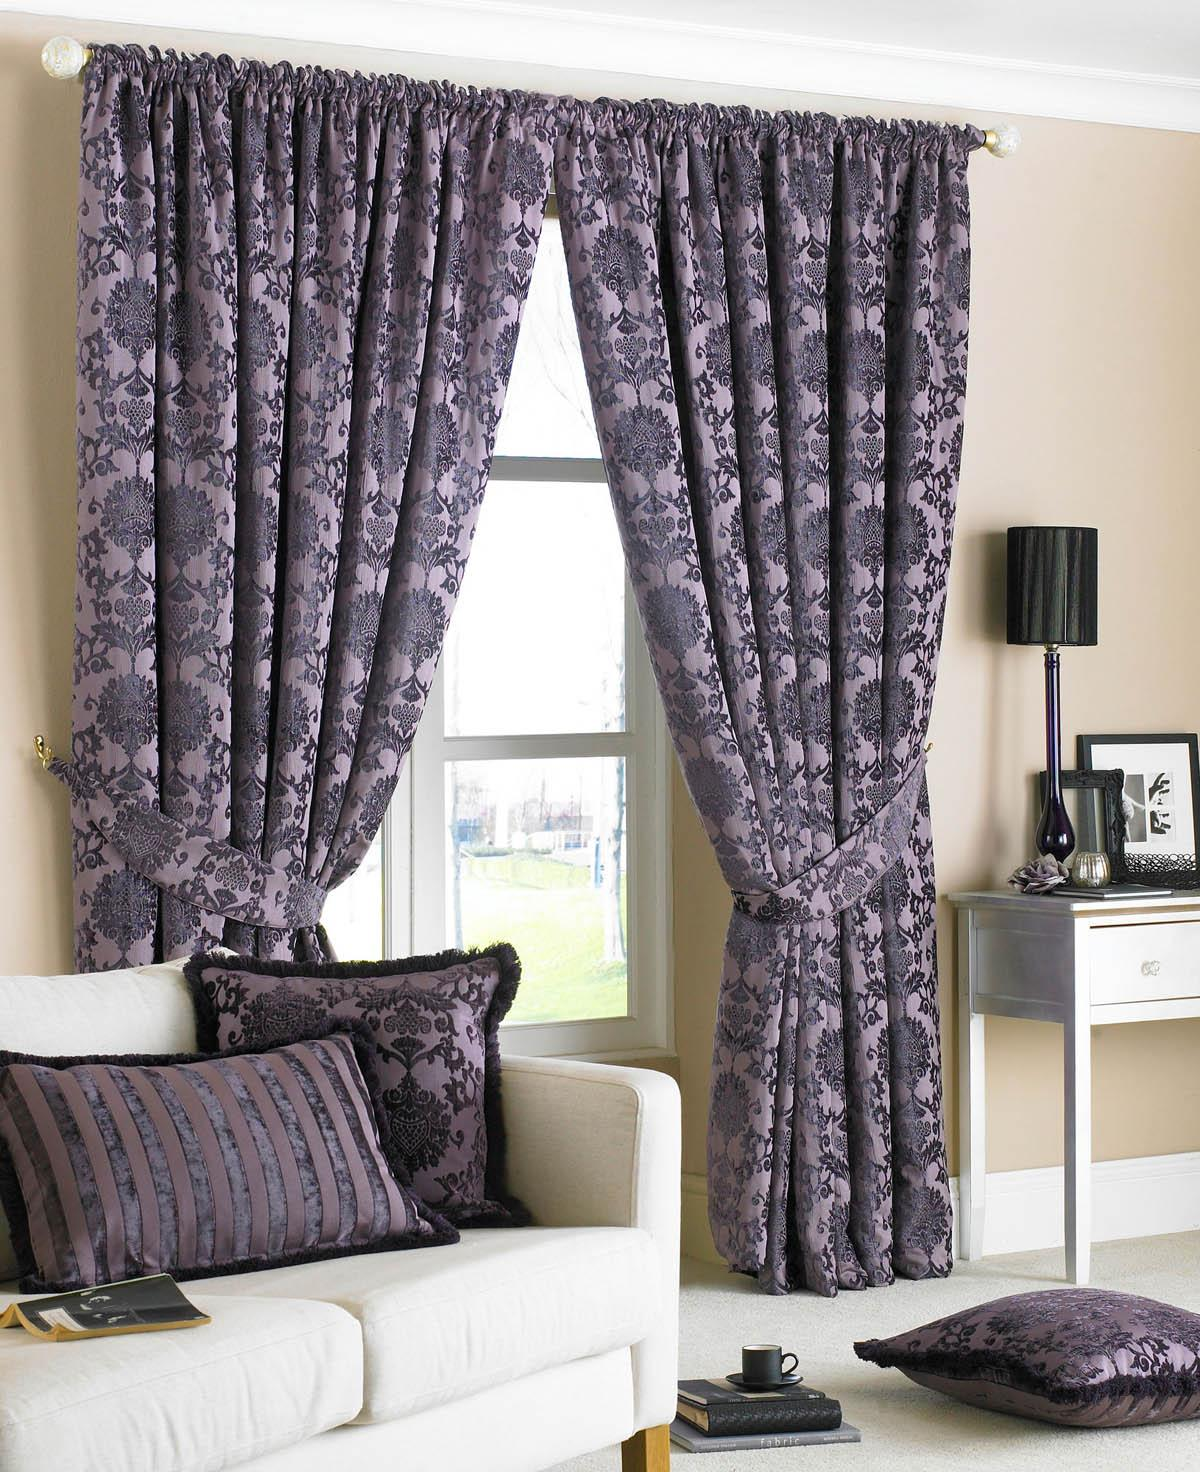 Damson Hanover Ready Made Curtains